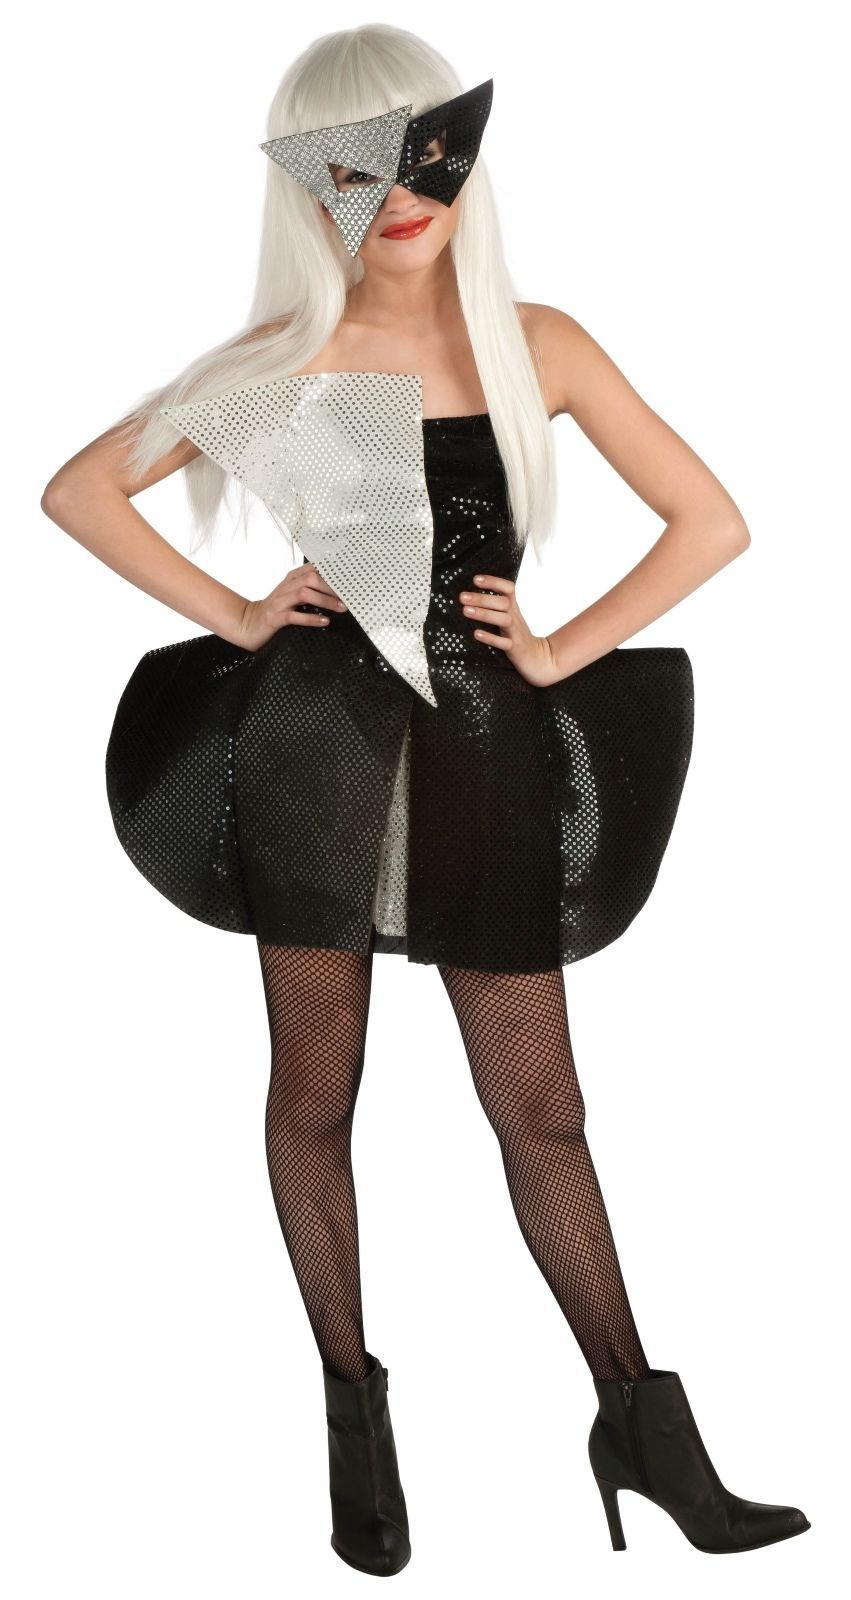 Image 0 of Licensed Lady Gaga Girl/Tween Black/Silver Sequin Polyester Costume//Mask Rubies